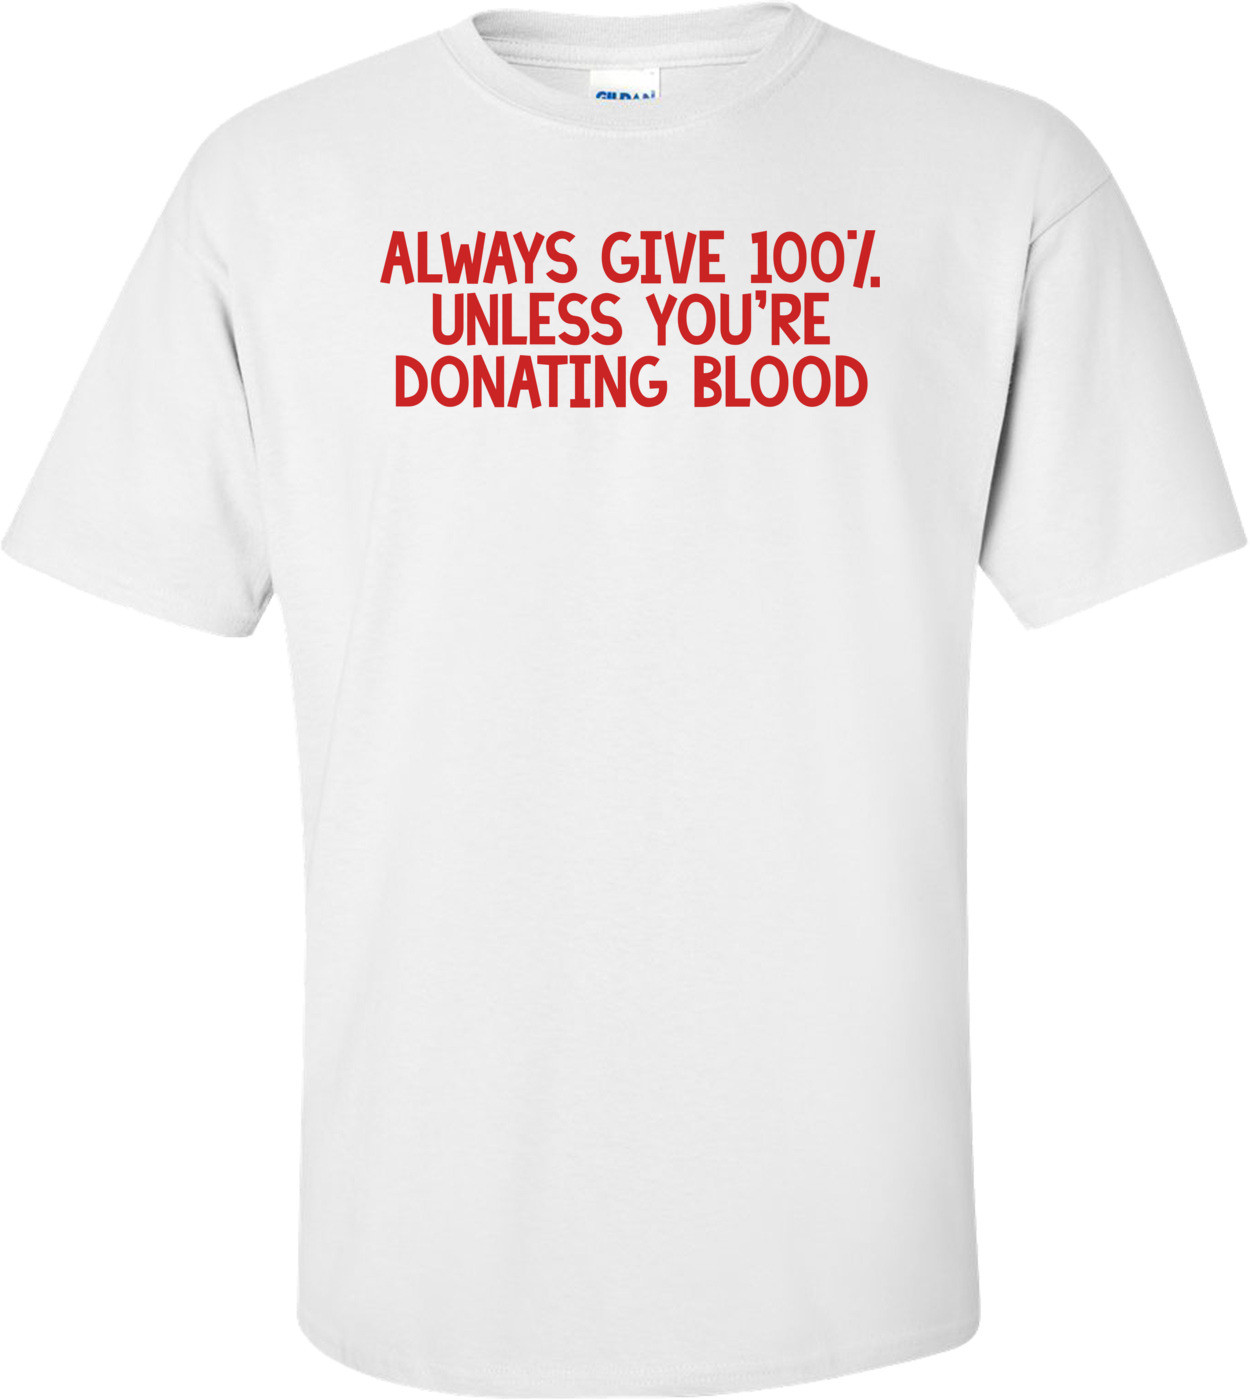 ALWAYS GIVE 100%, UNLESS YOU'RE DONATING BLOOD Shirt